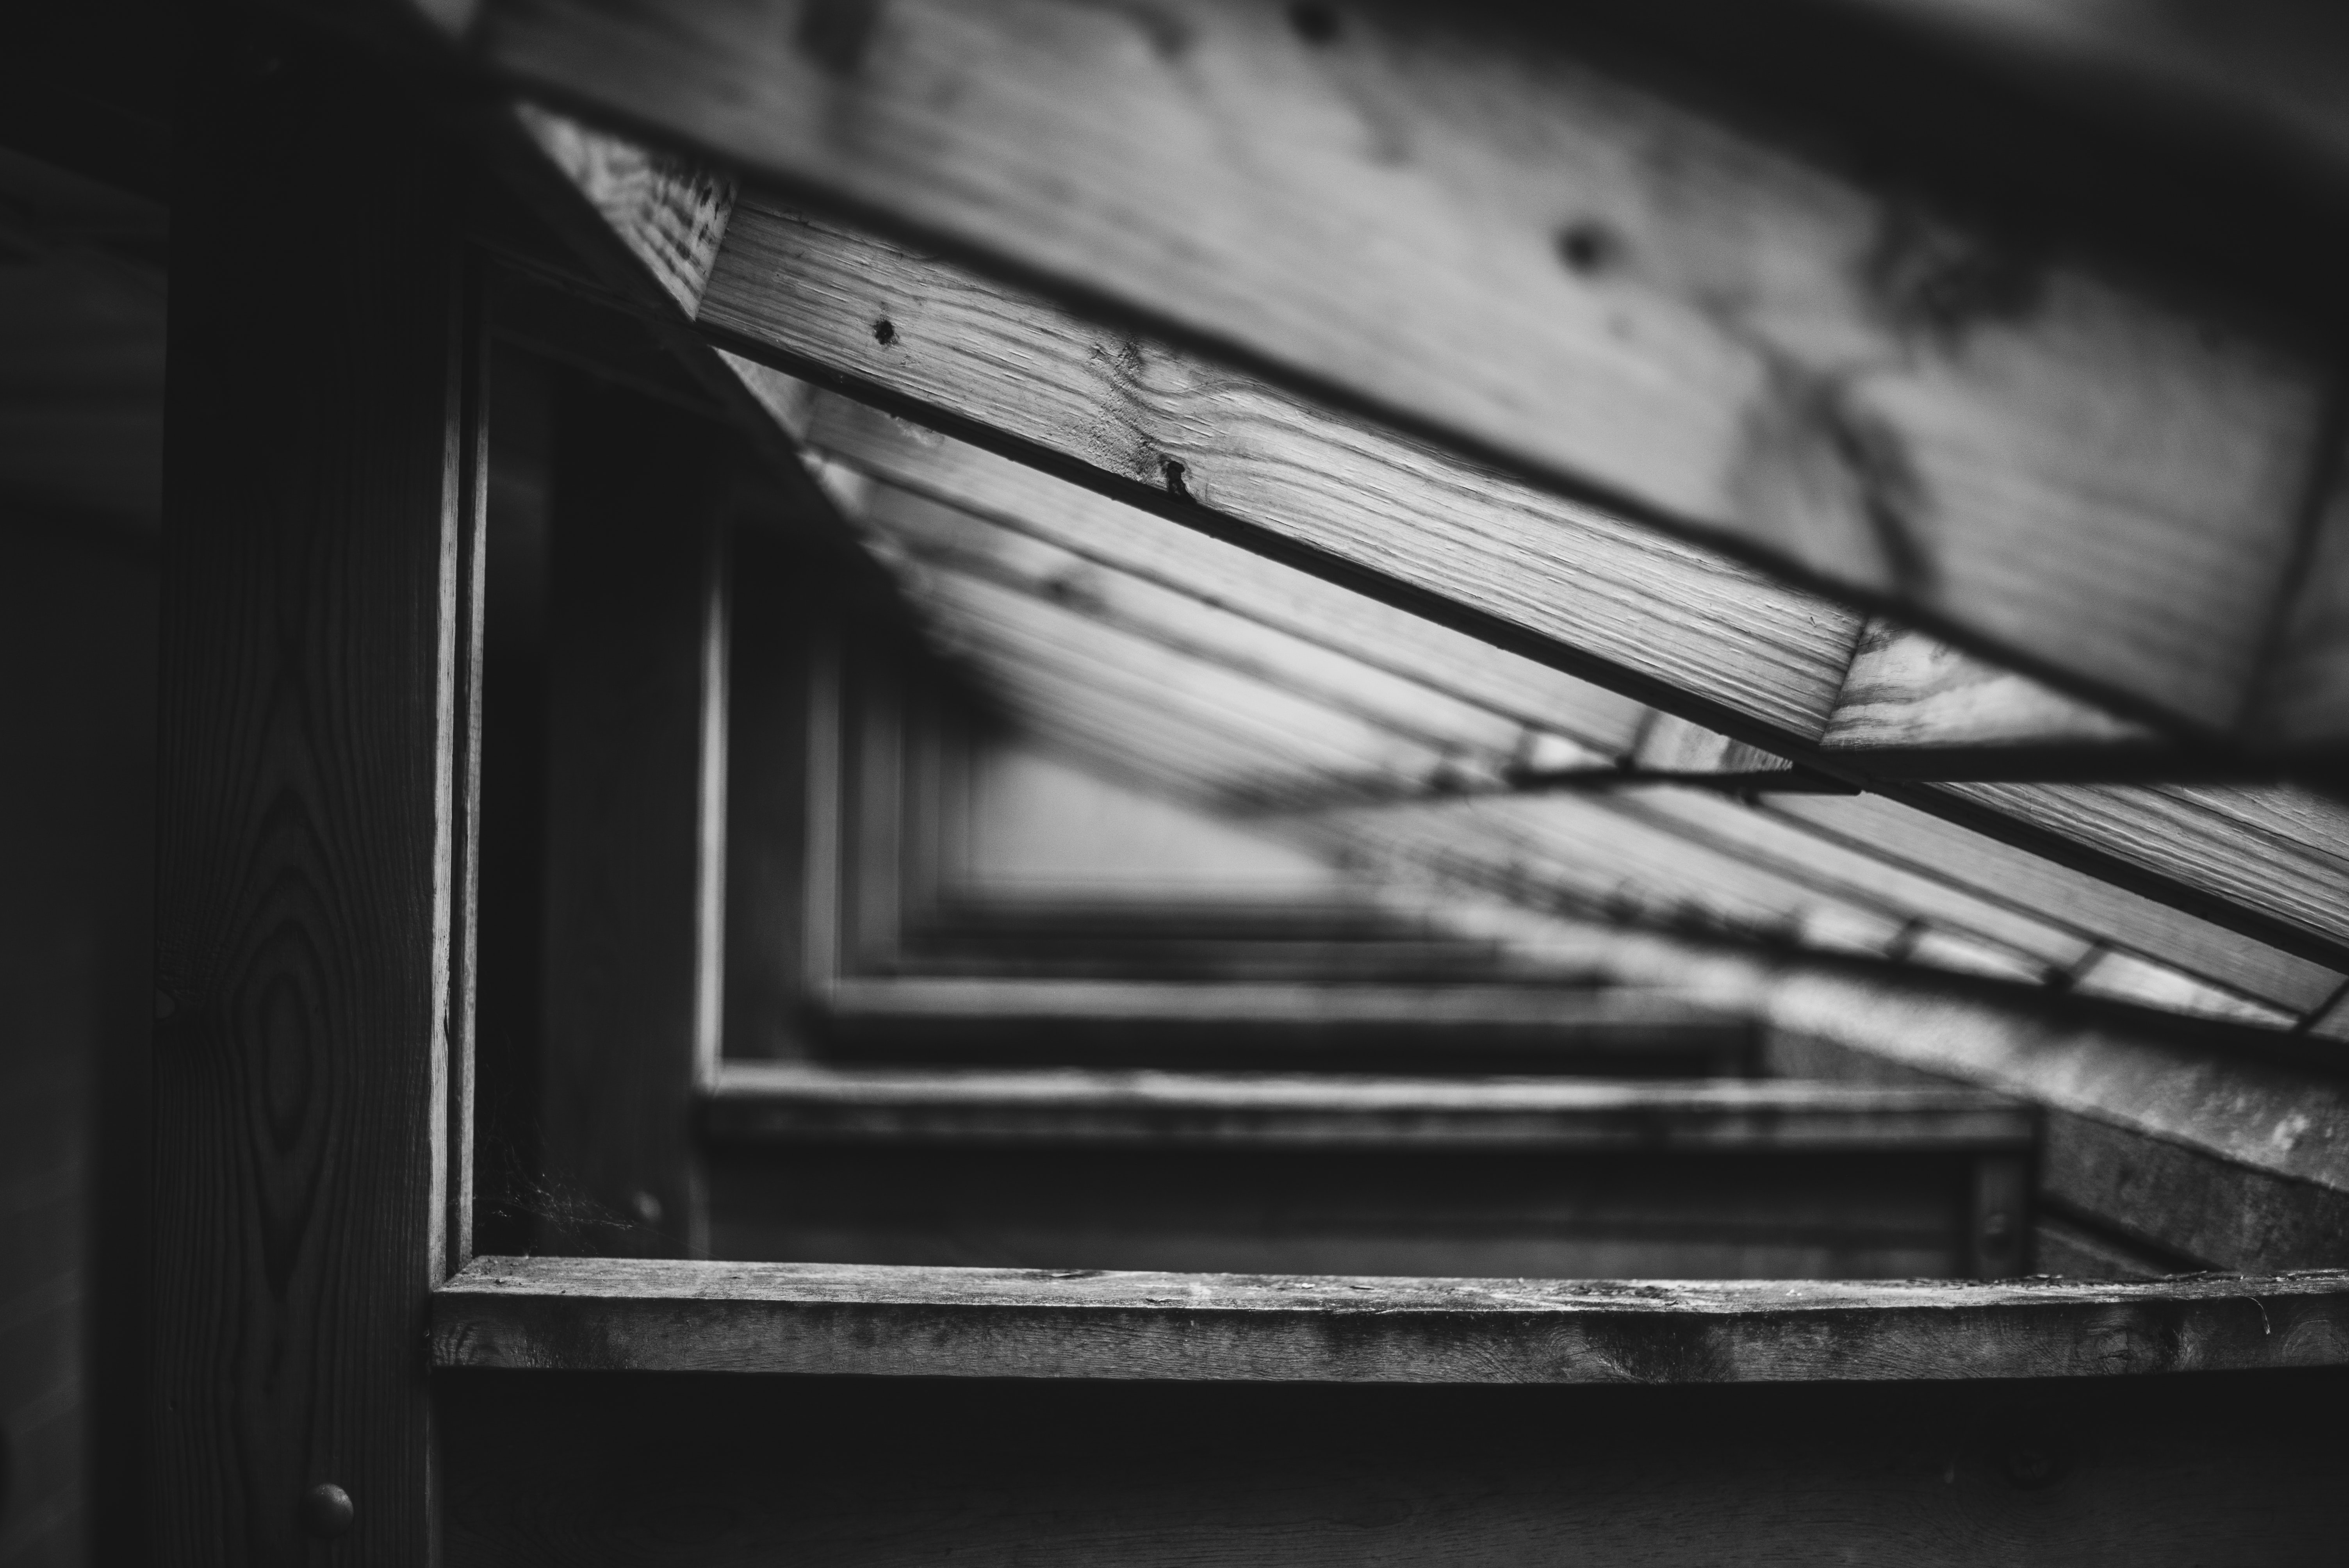 grayscale photo of wooden frame